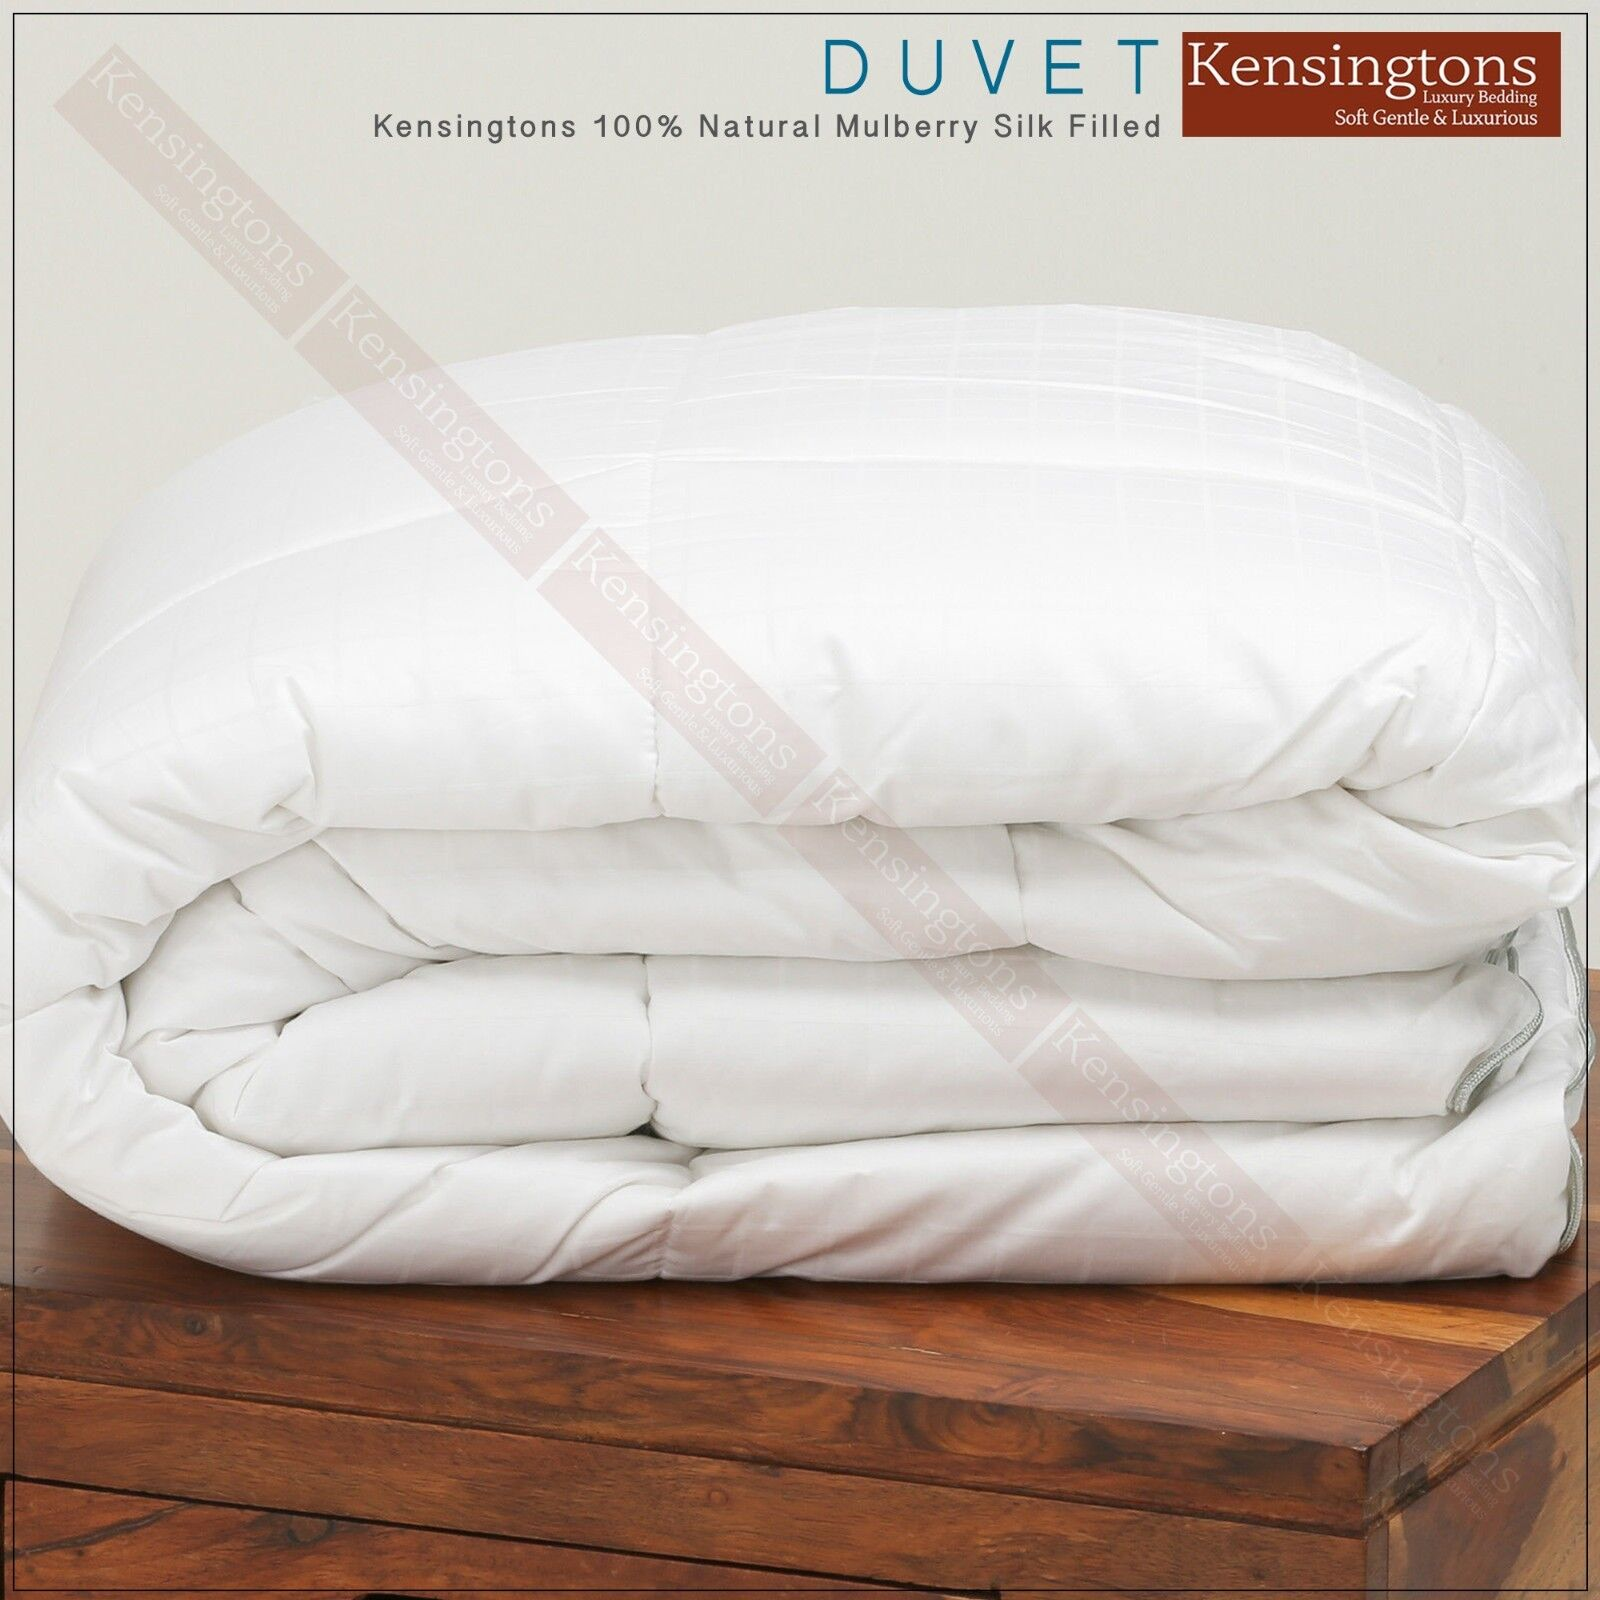 Luxurious Mulberry Silk Filled Duvet Quilt Double Bed in All All All Togs Hotel Quality 2d9d61